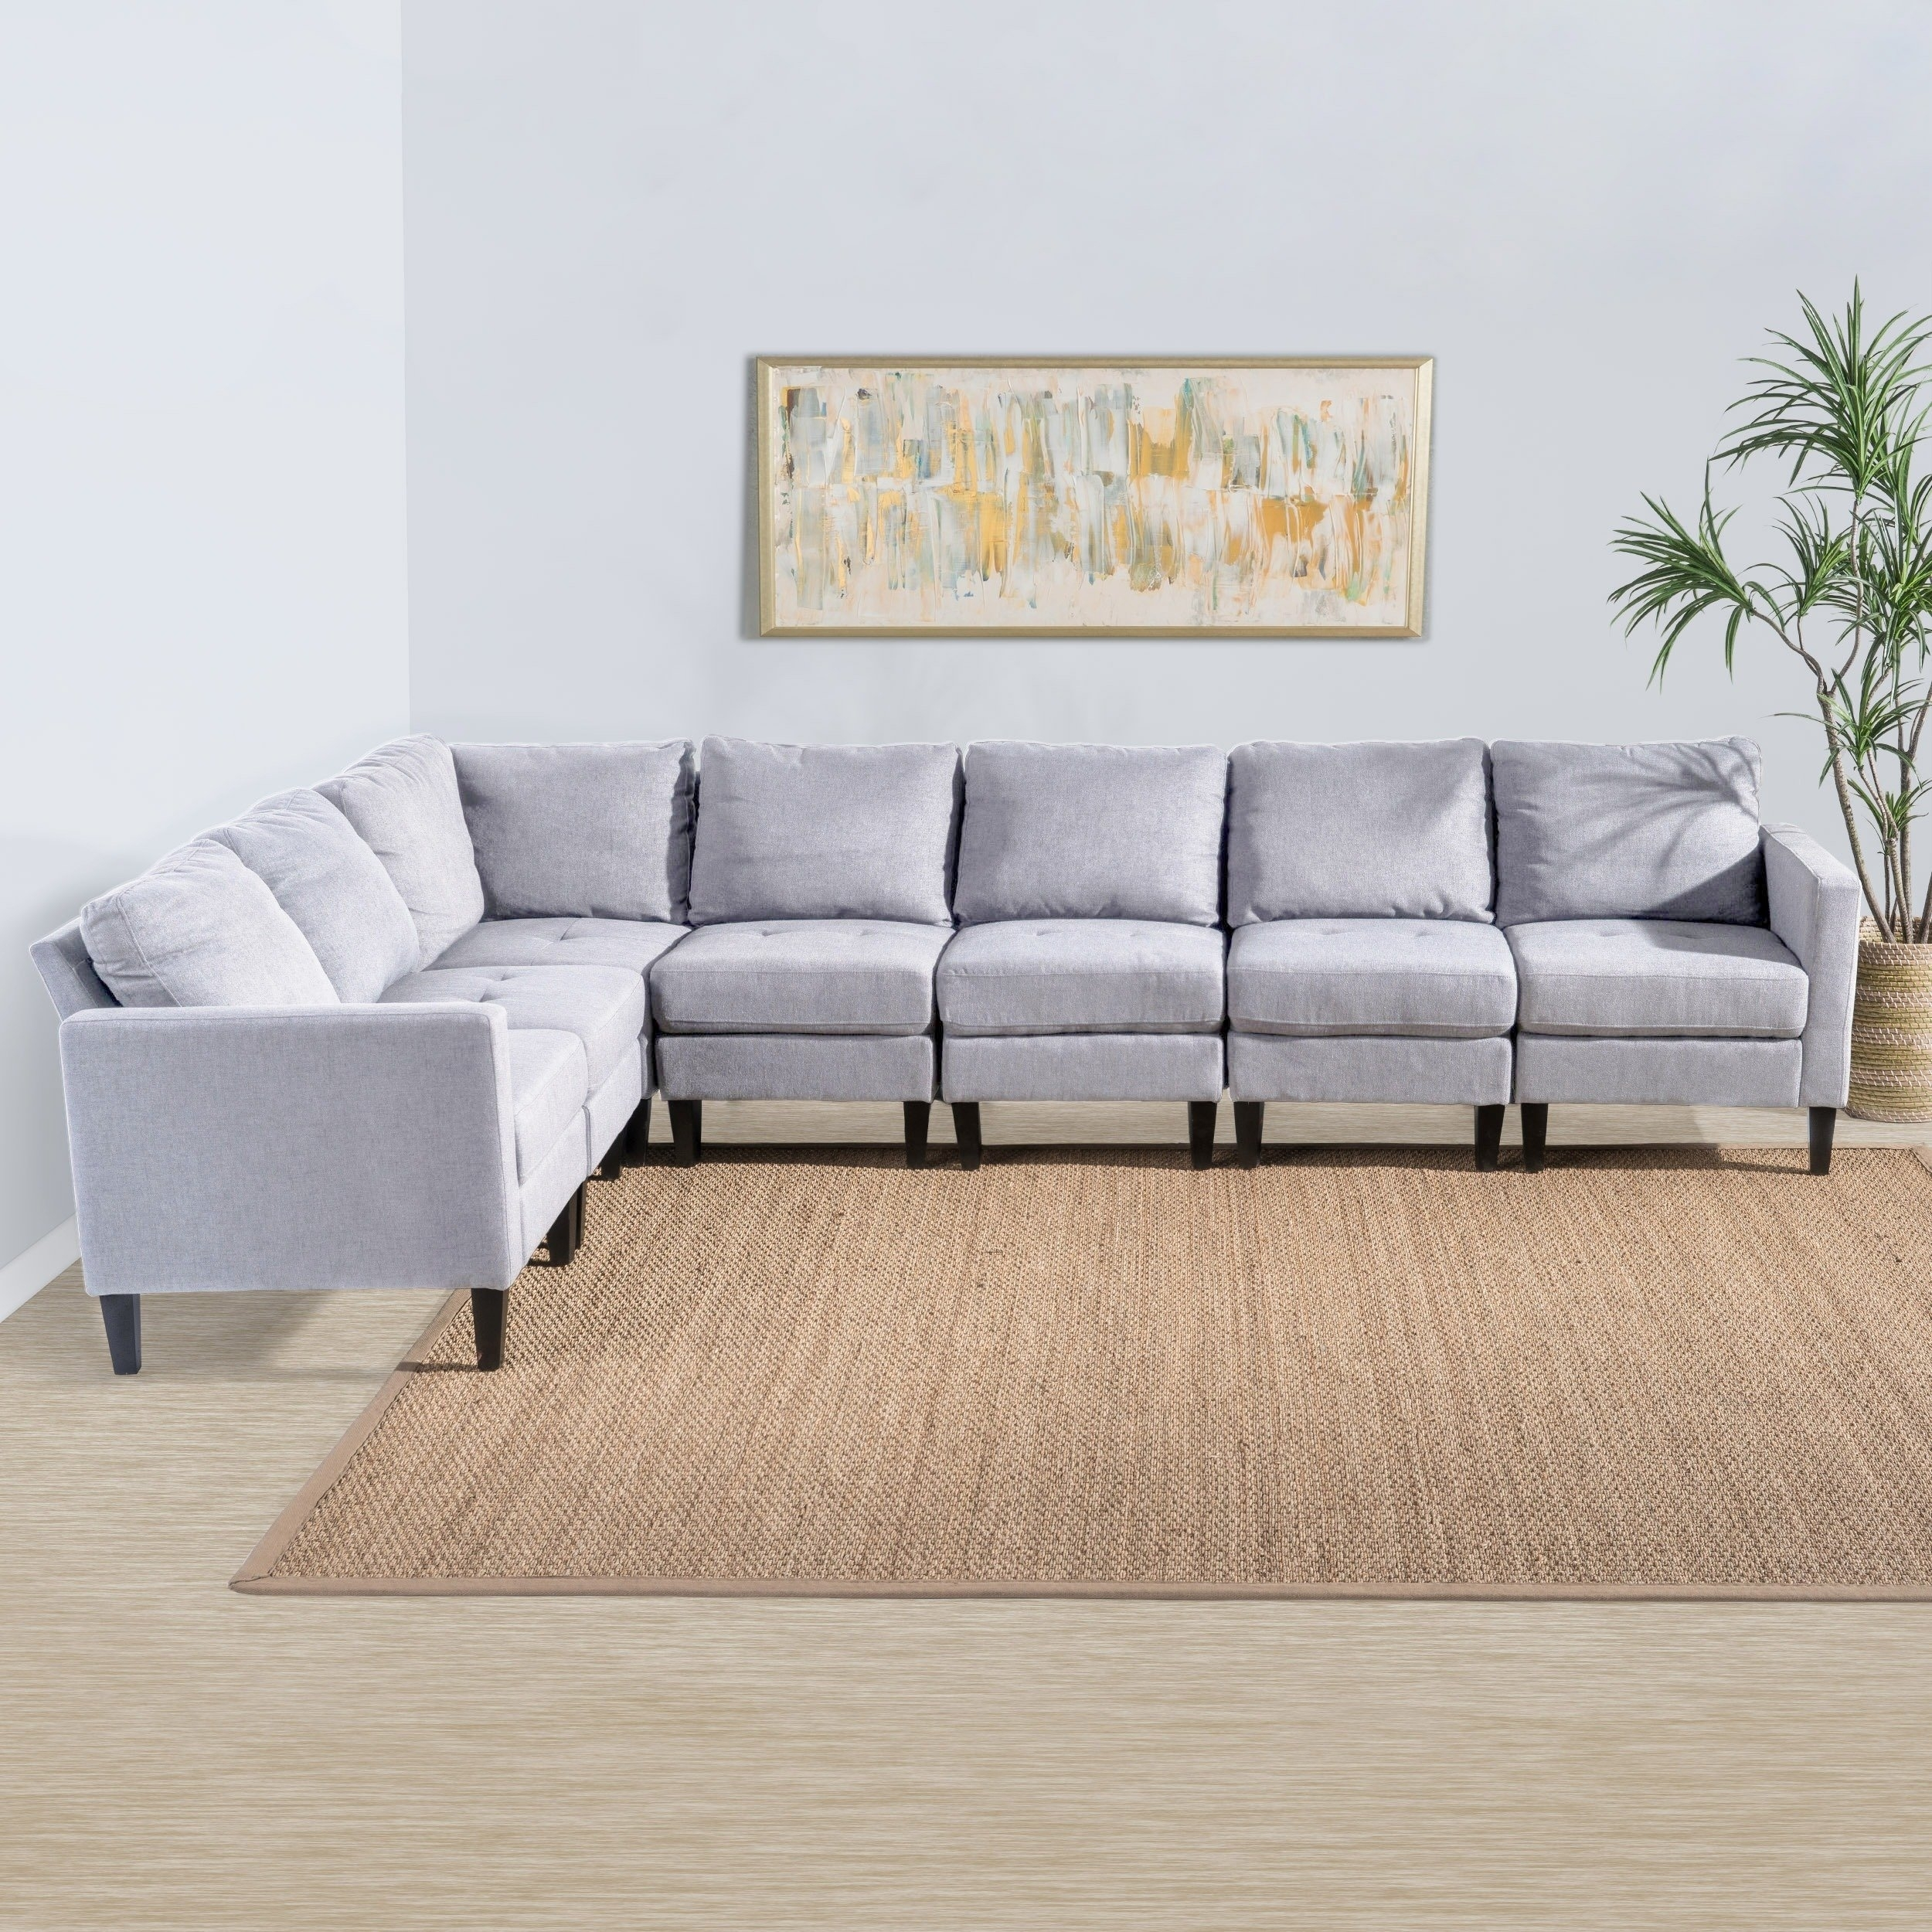 Shop Zahra 7 Piece Fabric Sectional Sofa Setchristopher Knight Within Haven Blue Steel 3 Piece Sectionals (View 25 of 25)